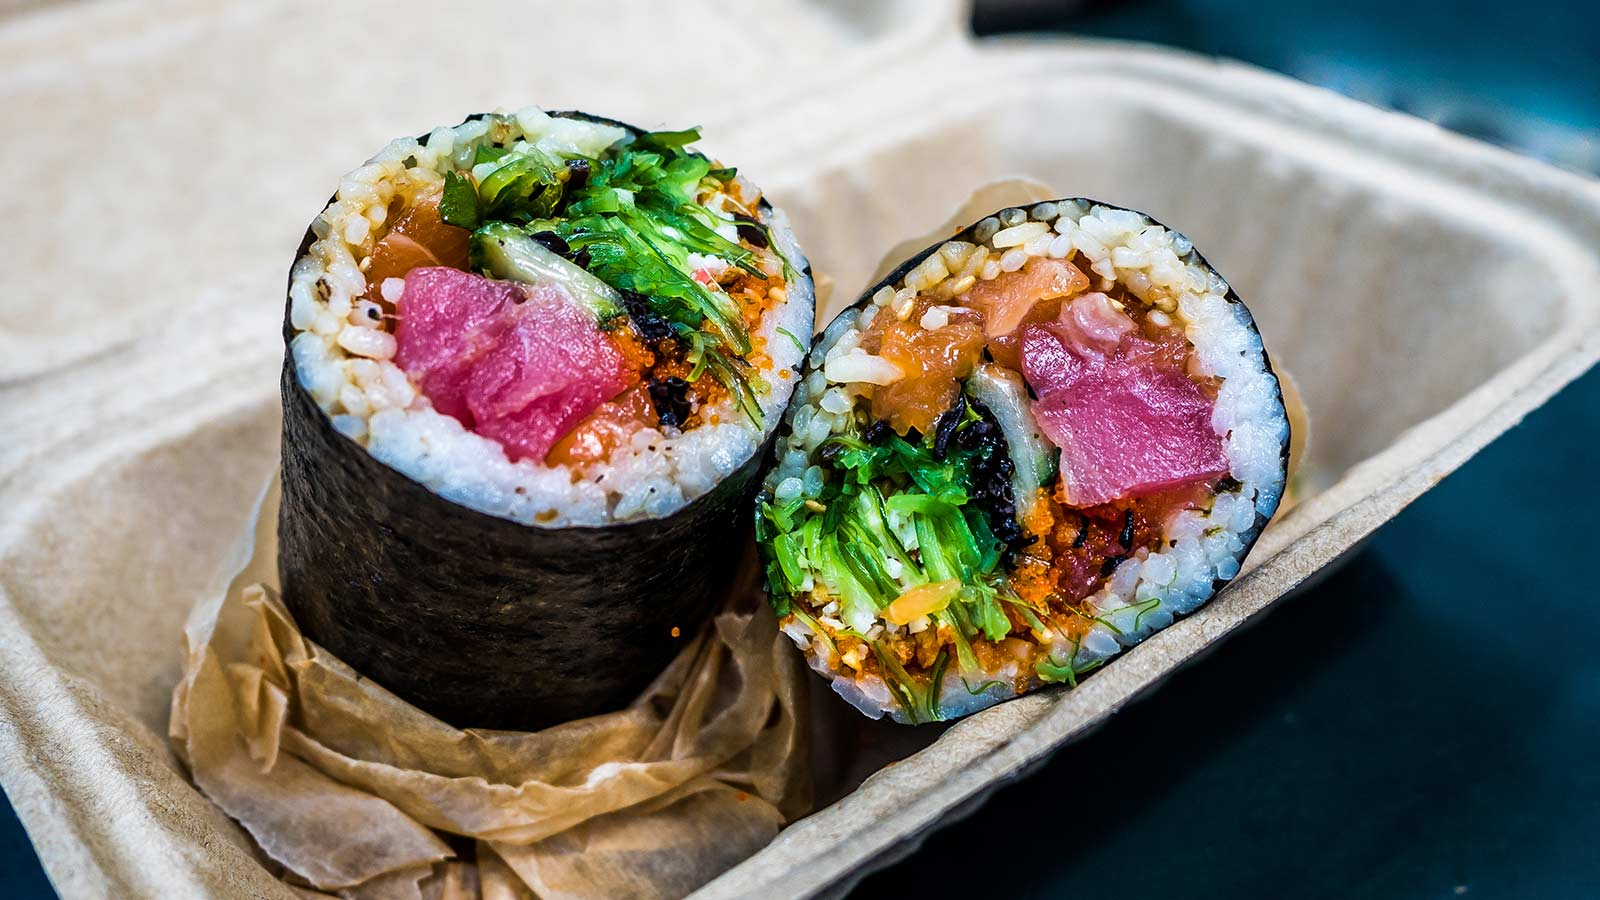 Japanese fusion sushi burrito in takeout container